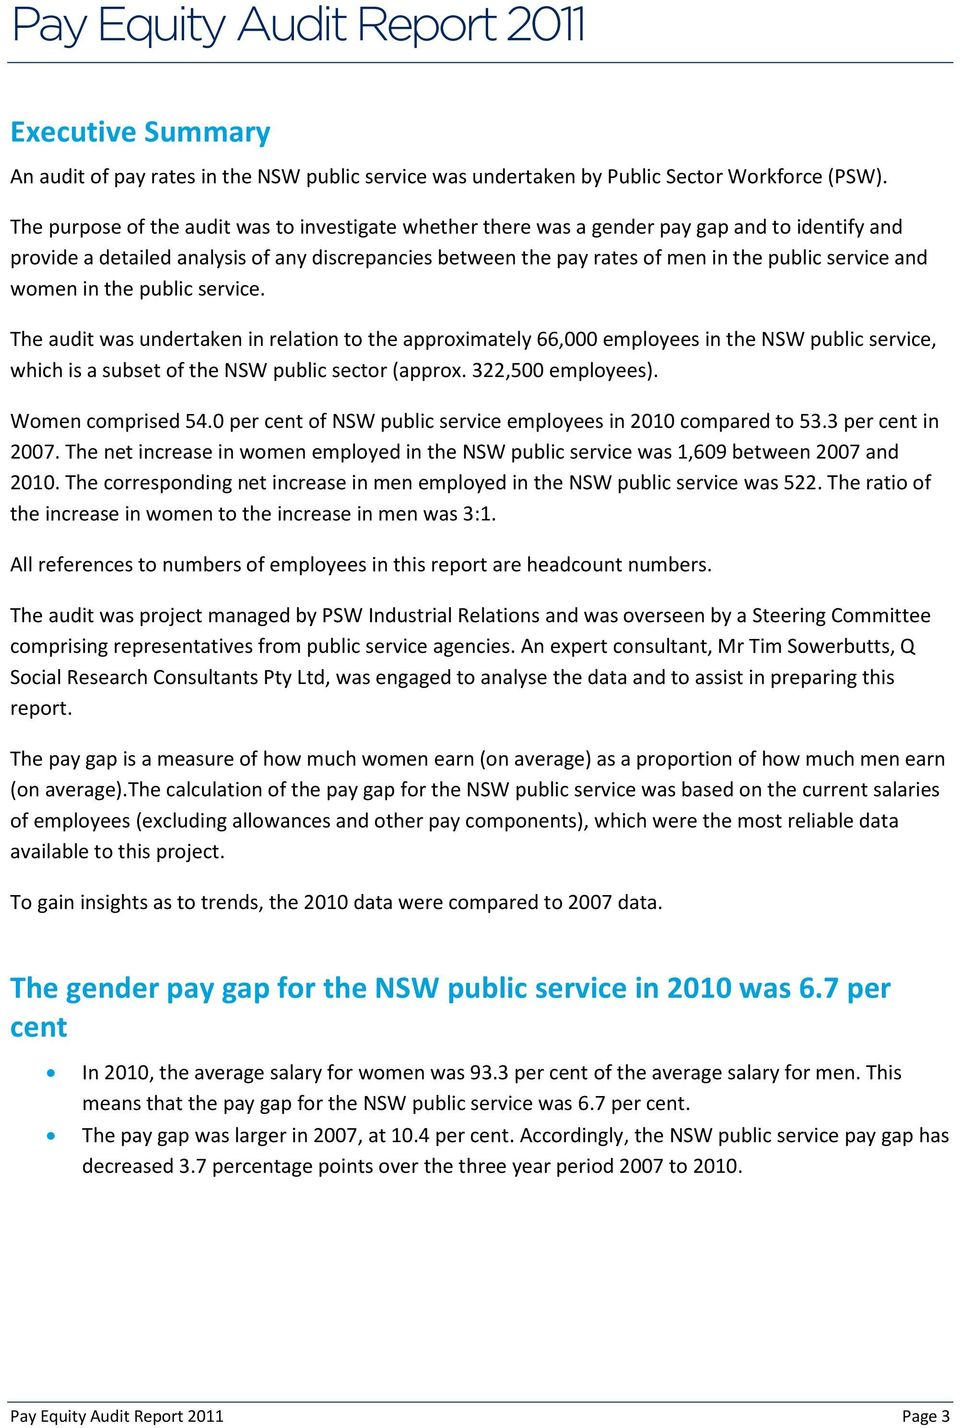 and women in the public service. The audit was undertaken in relation to the approximately 66,000 employees in the NSW public service, which is a subset of the NSW public sector (approx.